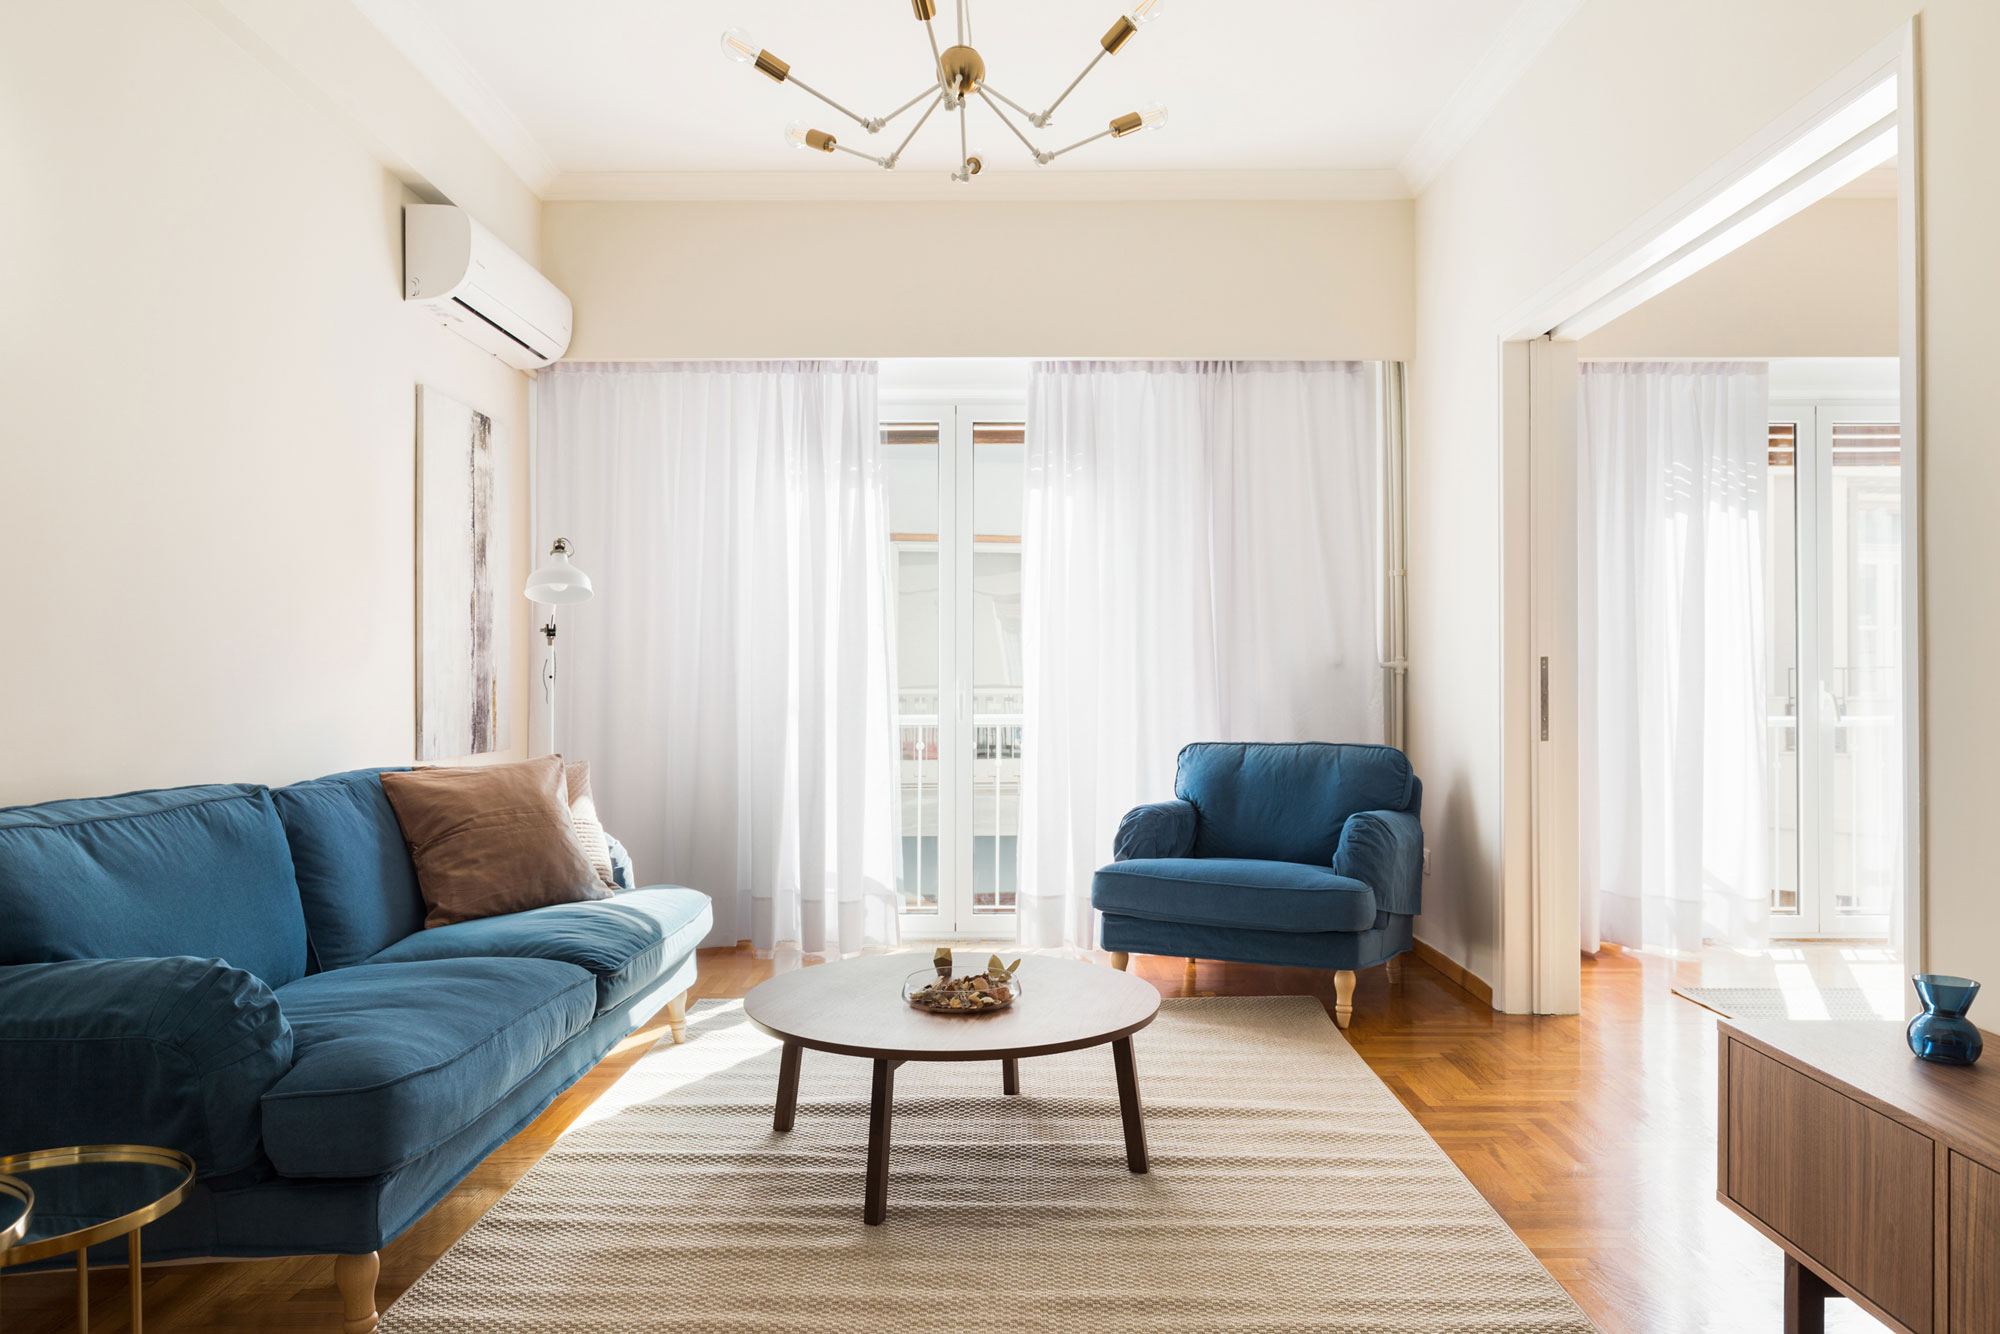 Chic 2BR Flat in the Heart of Athens